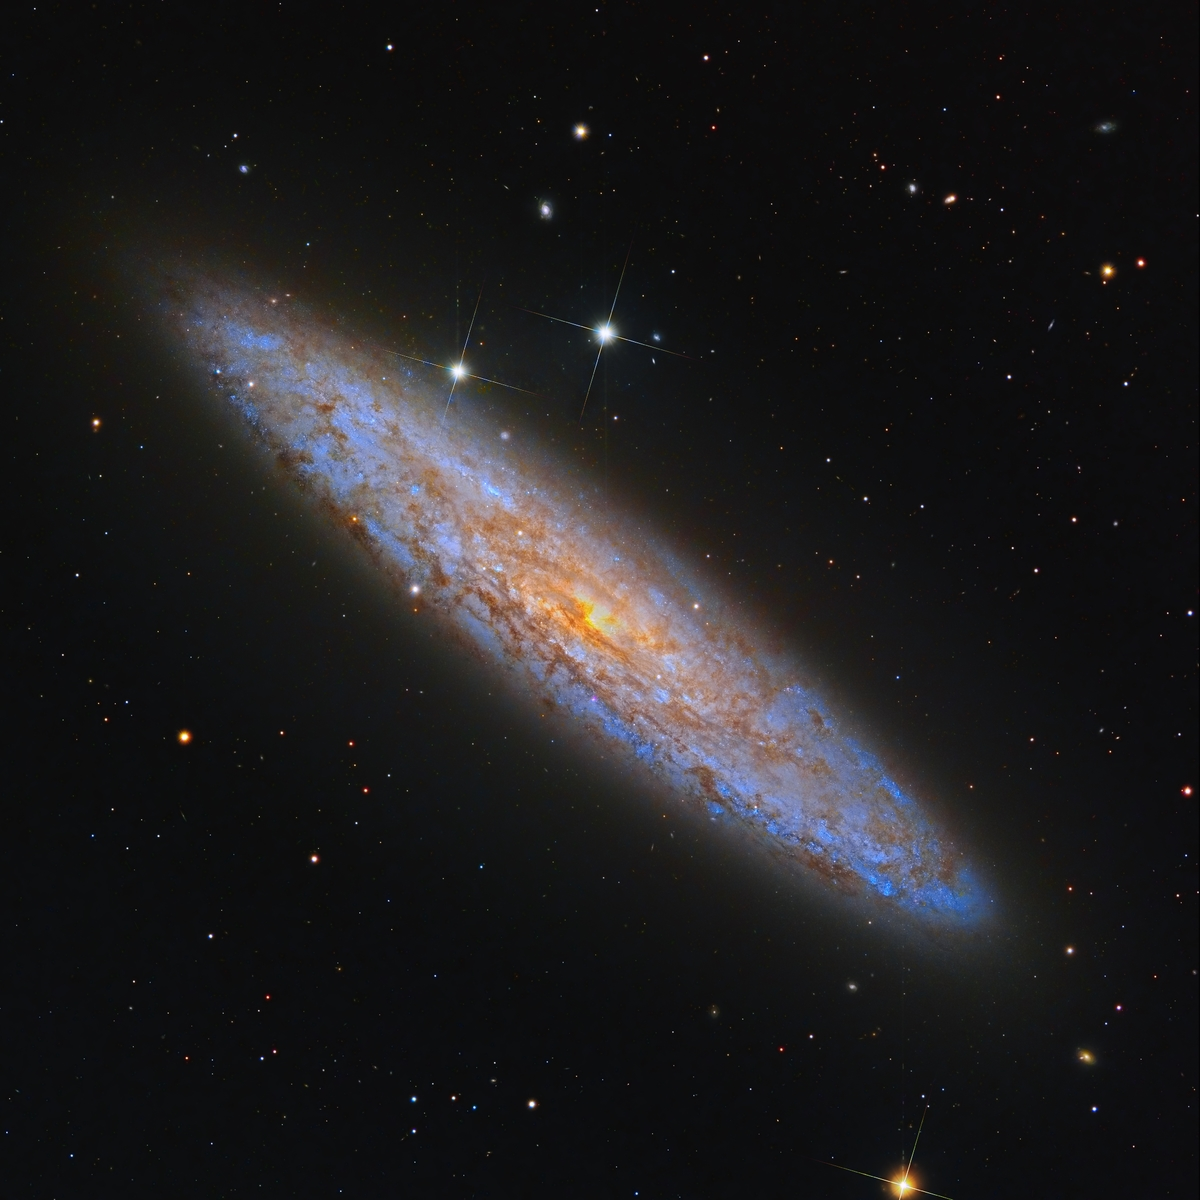 NGC 253 in its splendor !